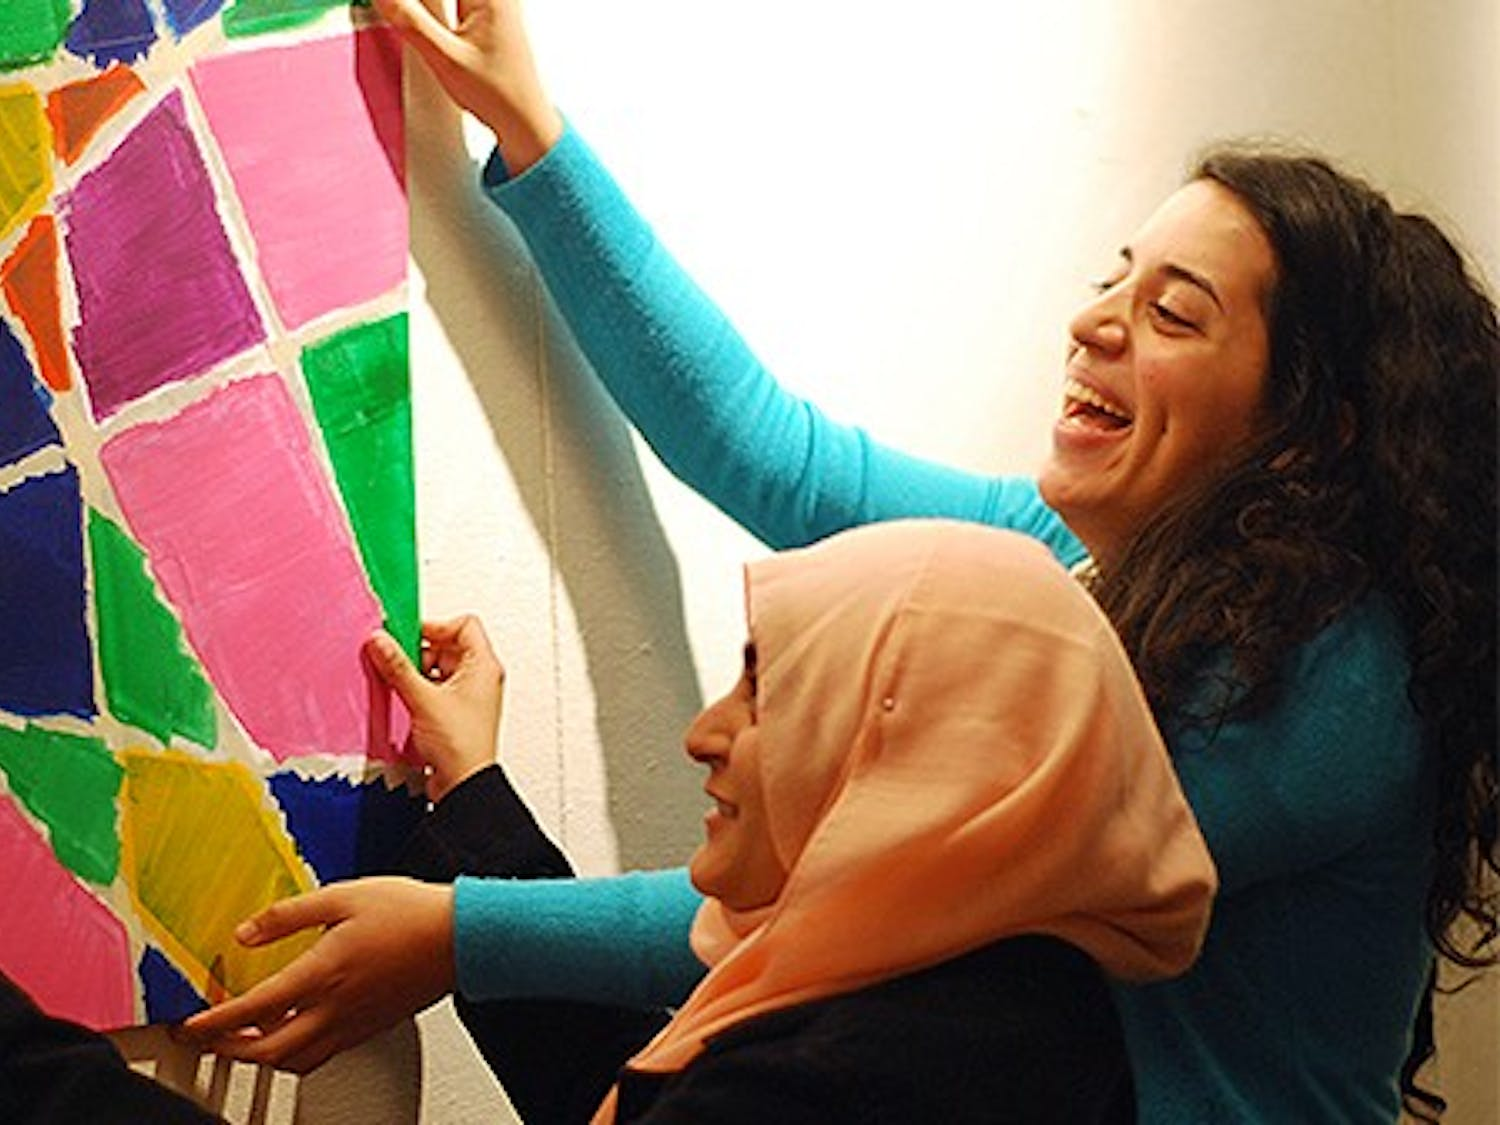 A group of UNC students are having a multimedia exhibition in the union on Wednesday. Features Muslims in the Triangle as they pursue their passions or interests. From left, Aisha Anwar,sophomore, and Layla K Quran, junior, are running the event.